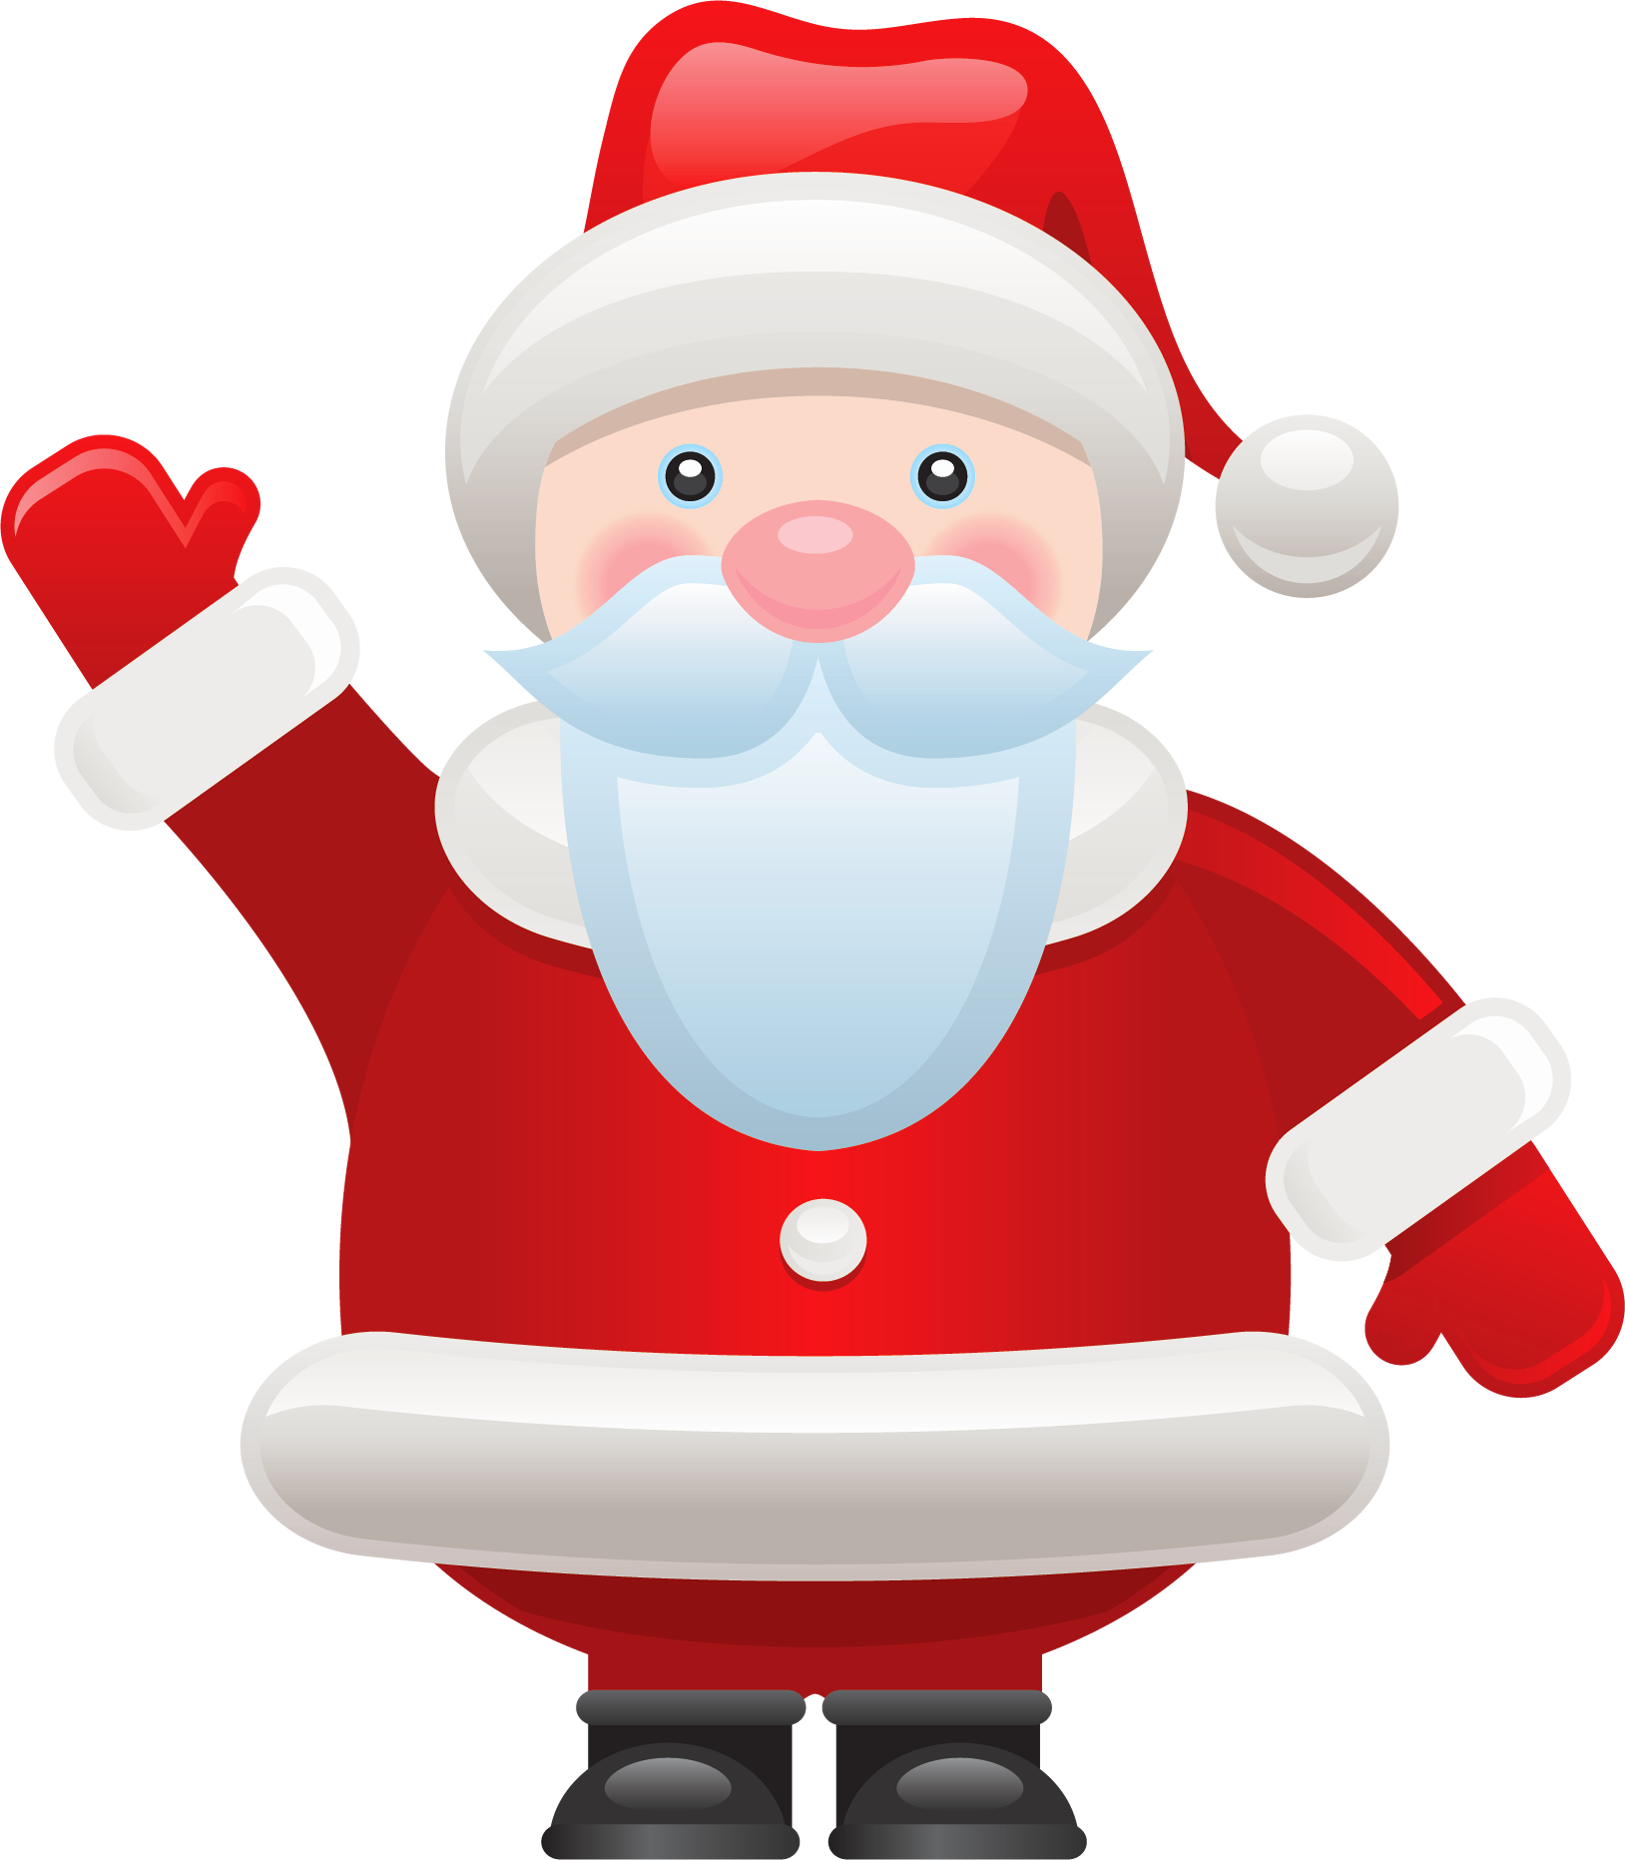 Santa clipart transparent background #14